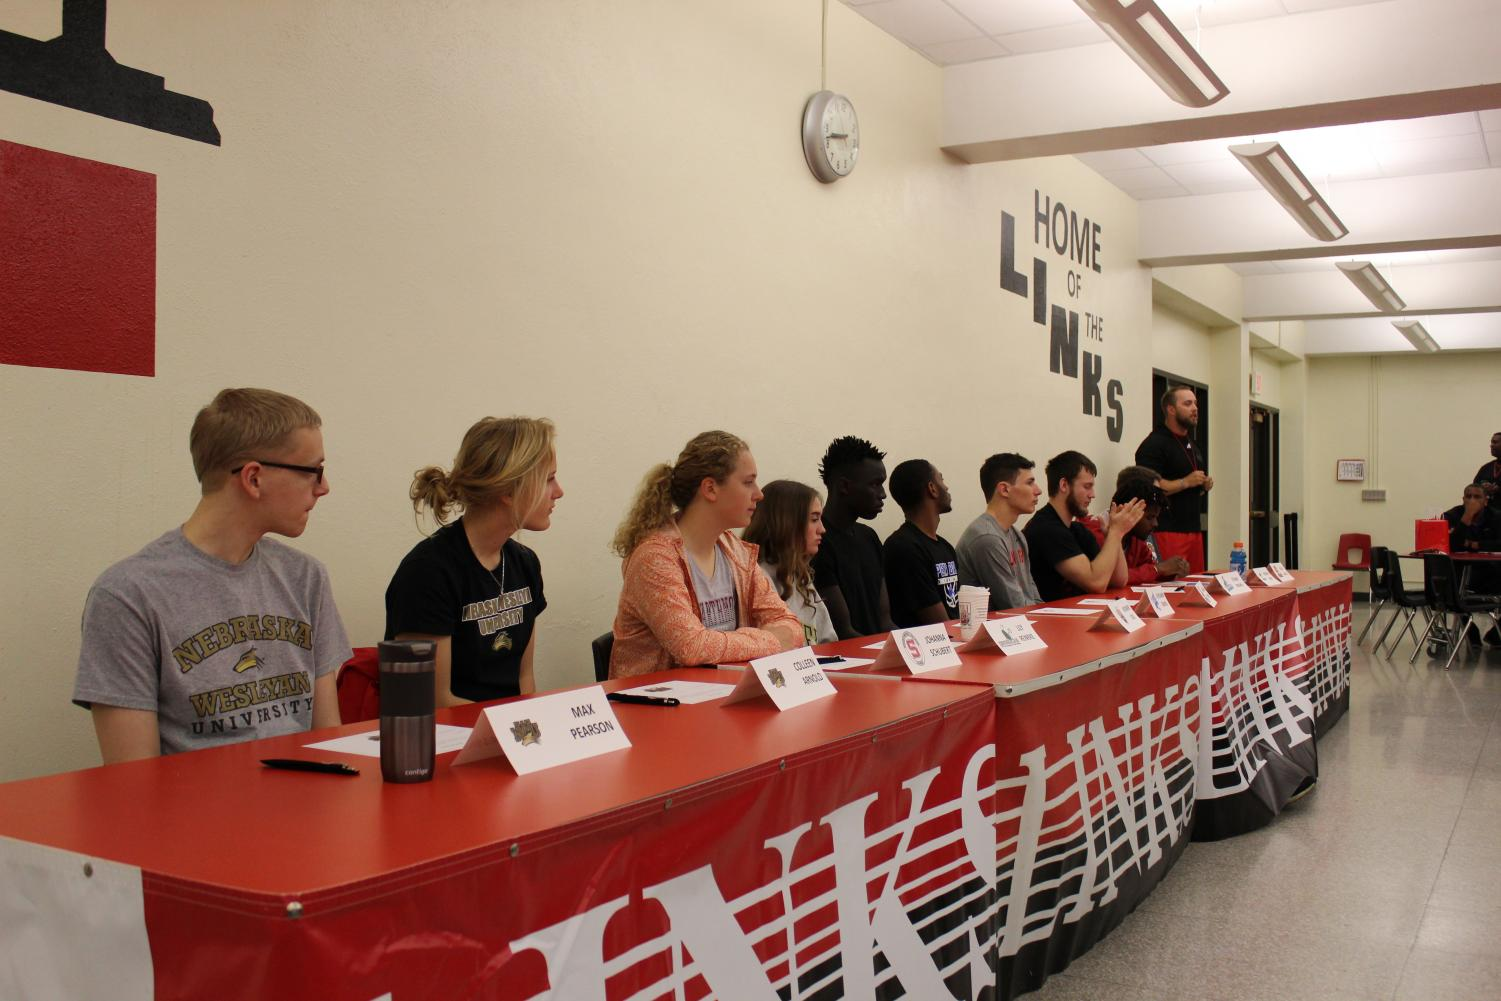 Students, staff, and families gather in the LHS cafeteria on Tuesday, May 7th, 2019, for Spring Signing Day. Ten student-athletes (Max Pearson, Colleen Arnold, Johanna Schubert, Lily Reinke, Boomer Jock, Keyshawn Jenkins, Graham Newton, Ethan Bruha, Morgan Perry, and Dylan McNeil) signed letters of intent to participate in athletics at the colleges and universities of their choice.  Photo by Zeke Williams